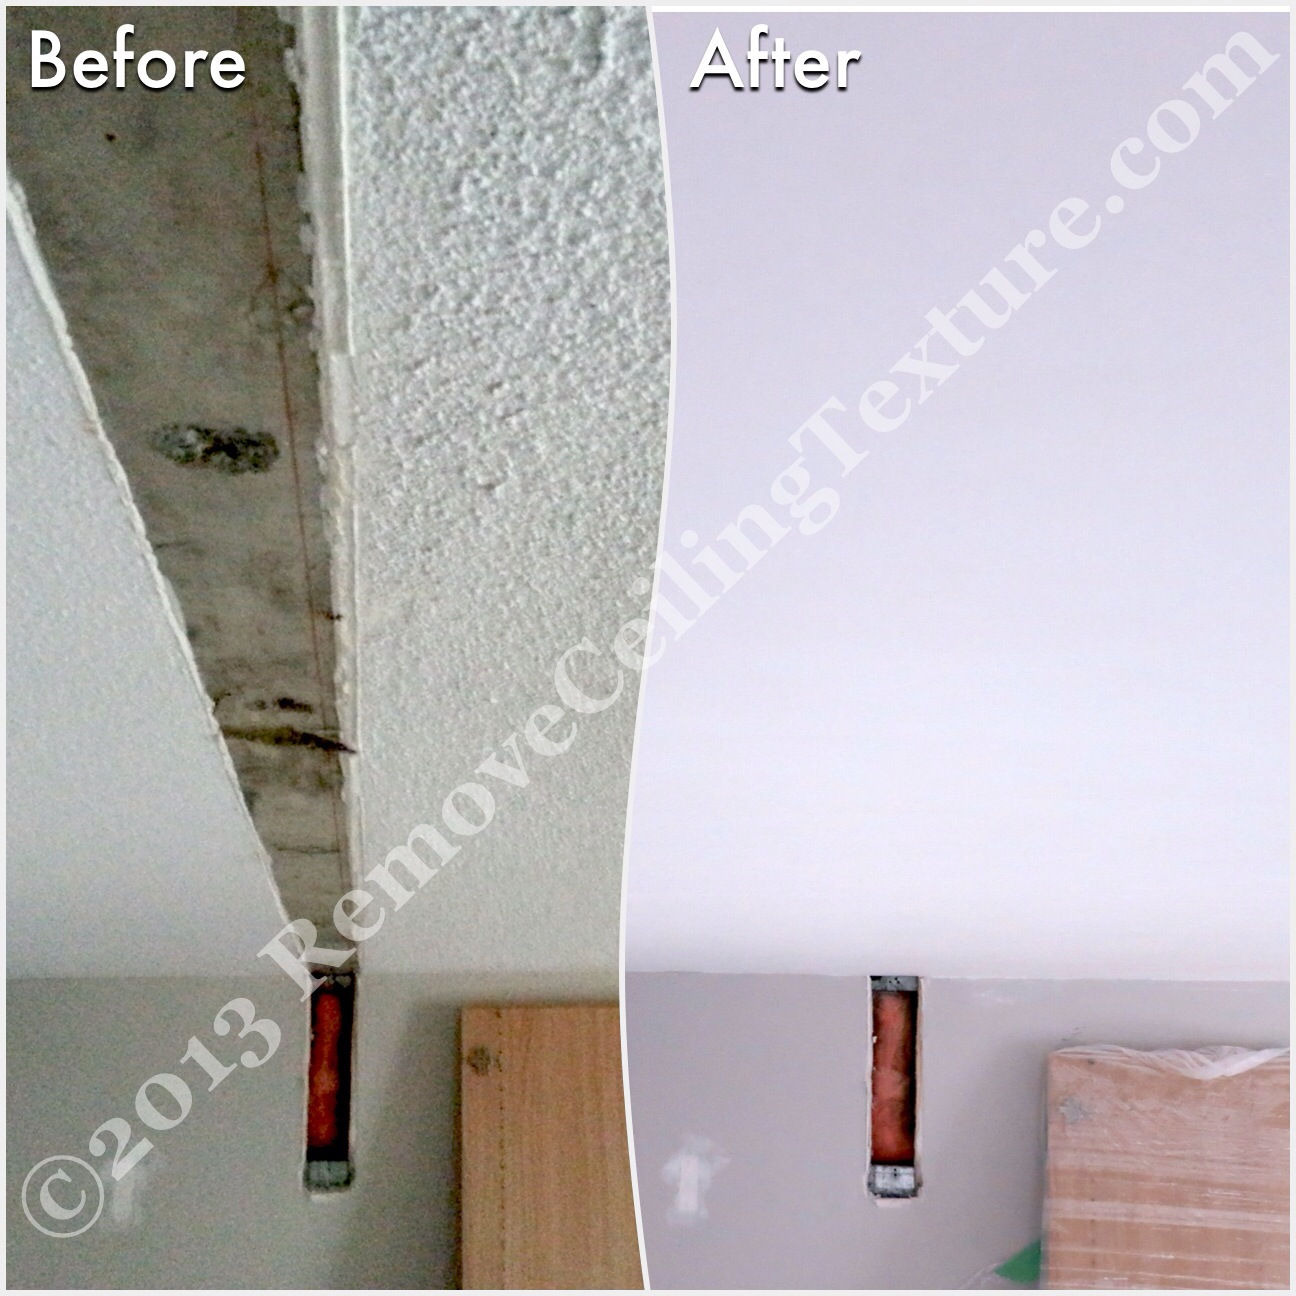 After removing walls, ceiling repairs will need to be done, as you can see at this condo at 1331 Homer Street